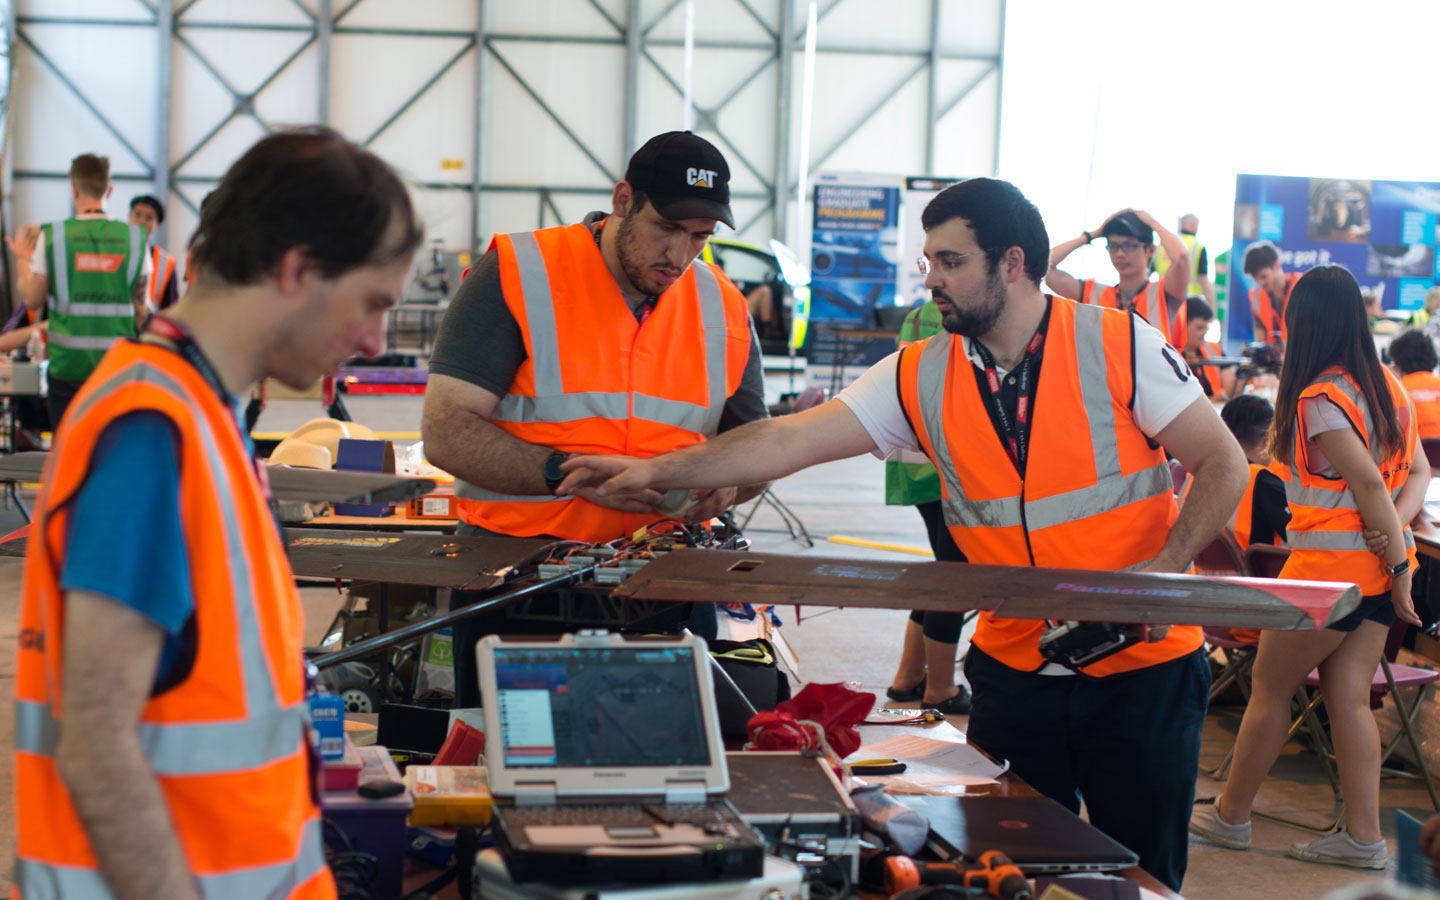 UAS teams making their drones in hangar at Llanbedr